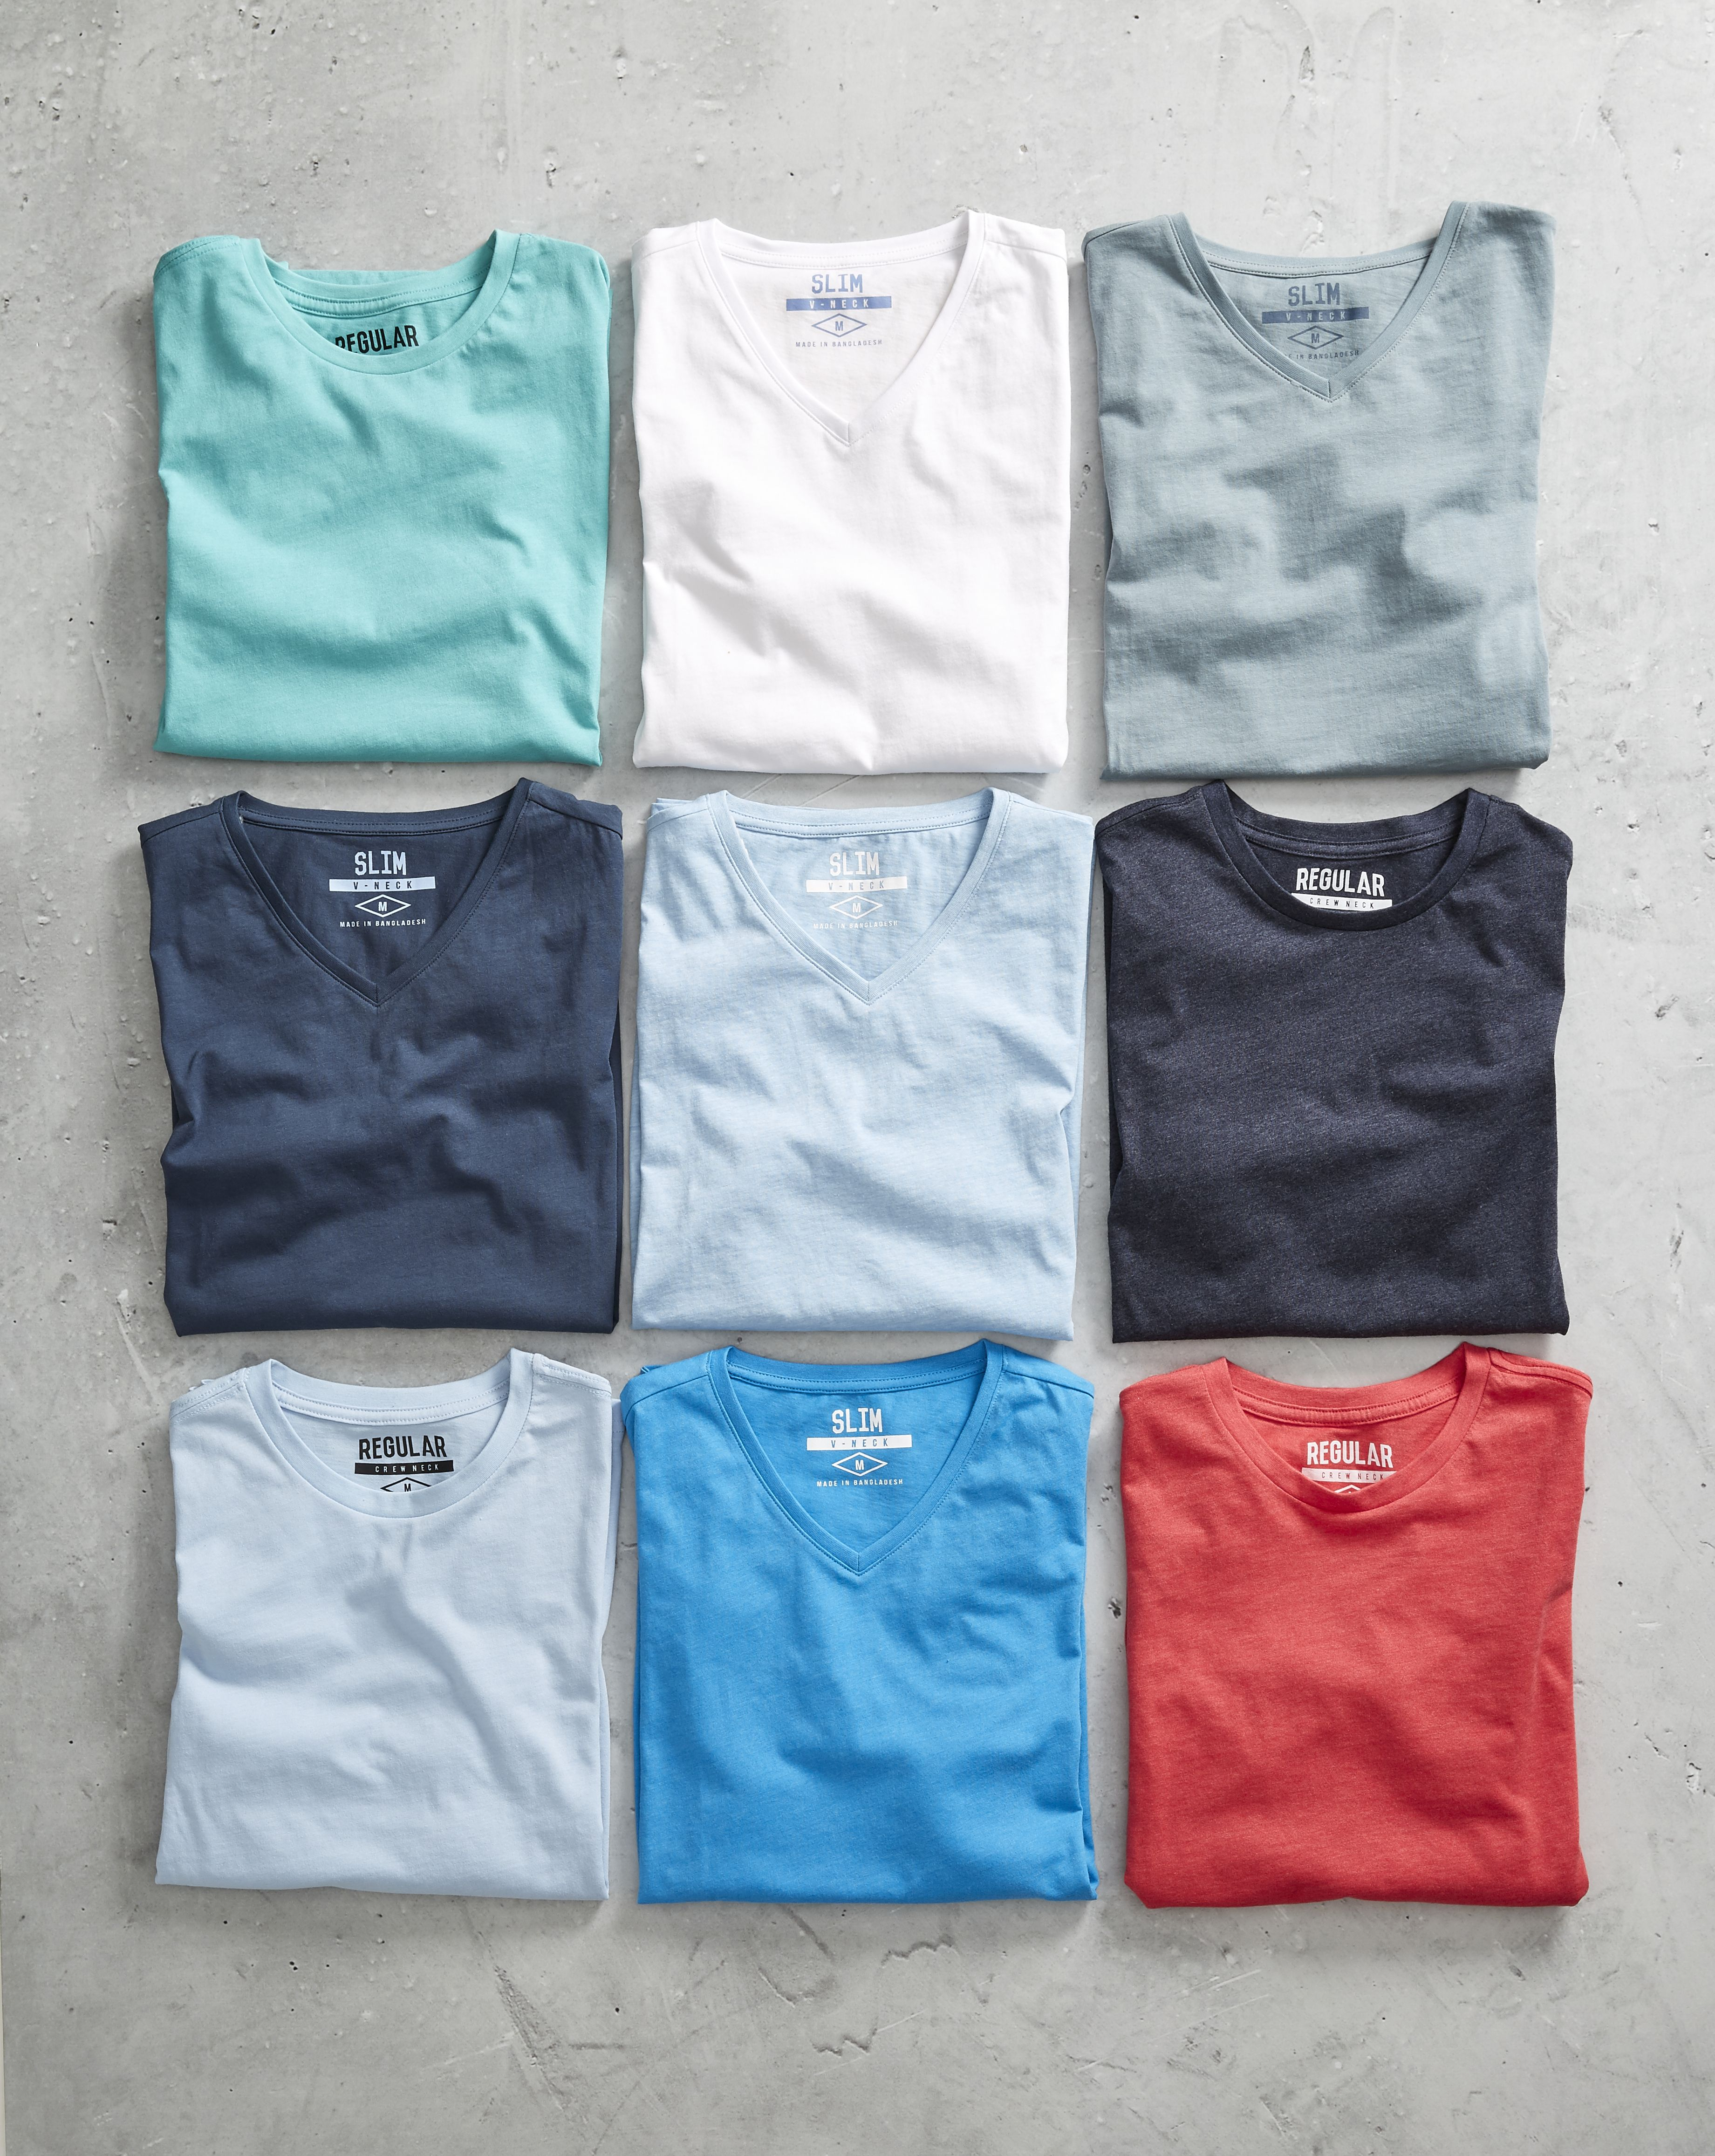 Kmart Men's Ultimate Tee, sizes S-4XL, RRP$5.00